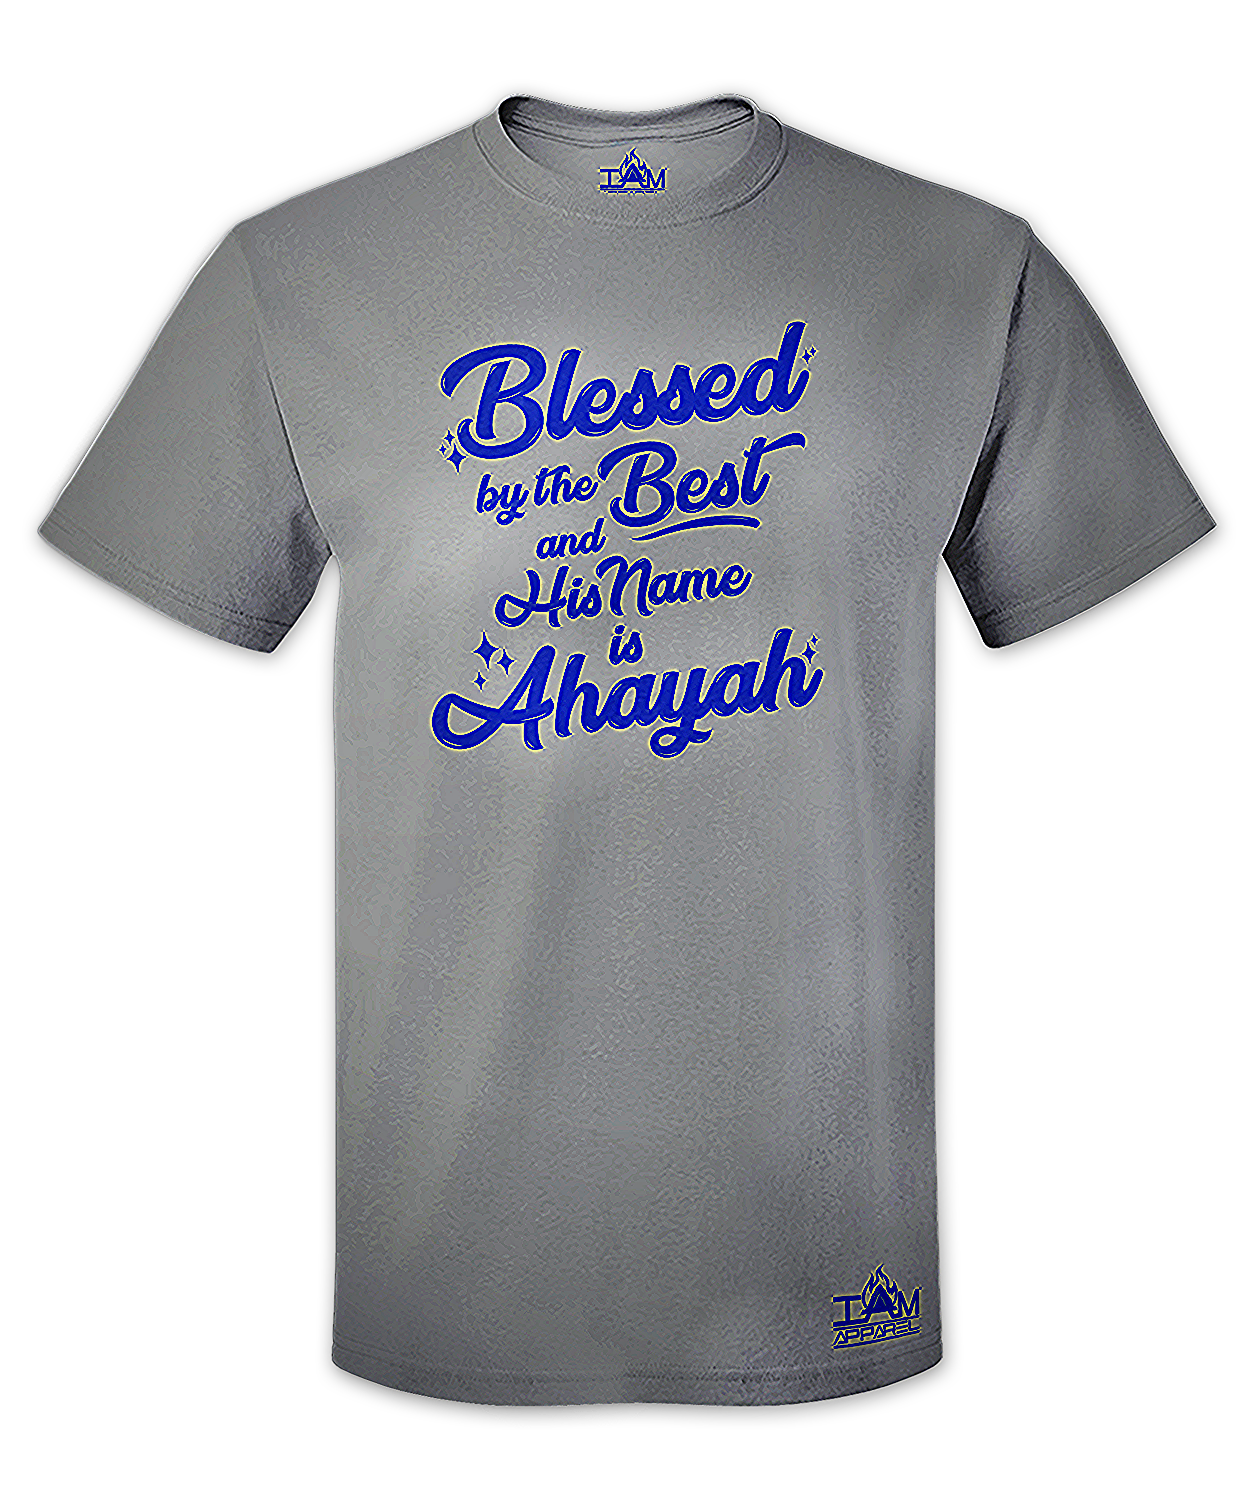 Men's Blessed by the best Short Sleeved Grey T-shirt